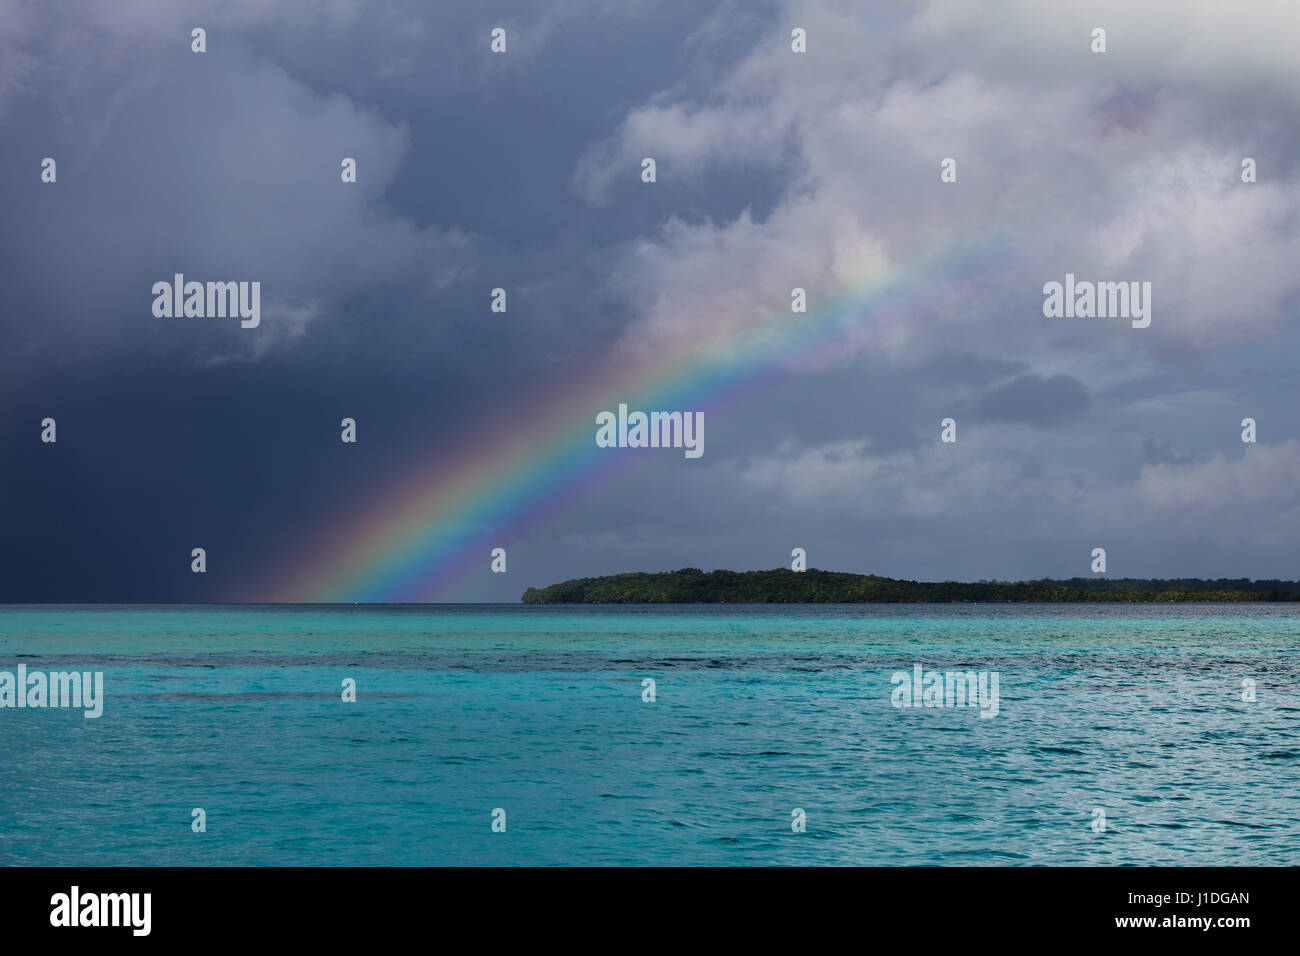 A Beautiful Rainbow Appears Over Tropical Lagoon Waters In The Stock Photo Alamy